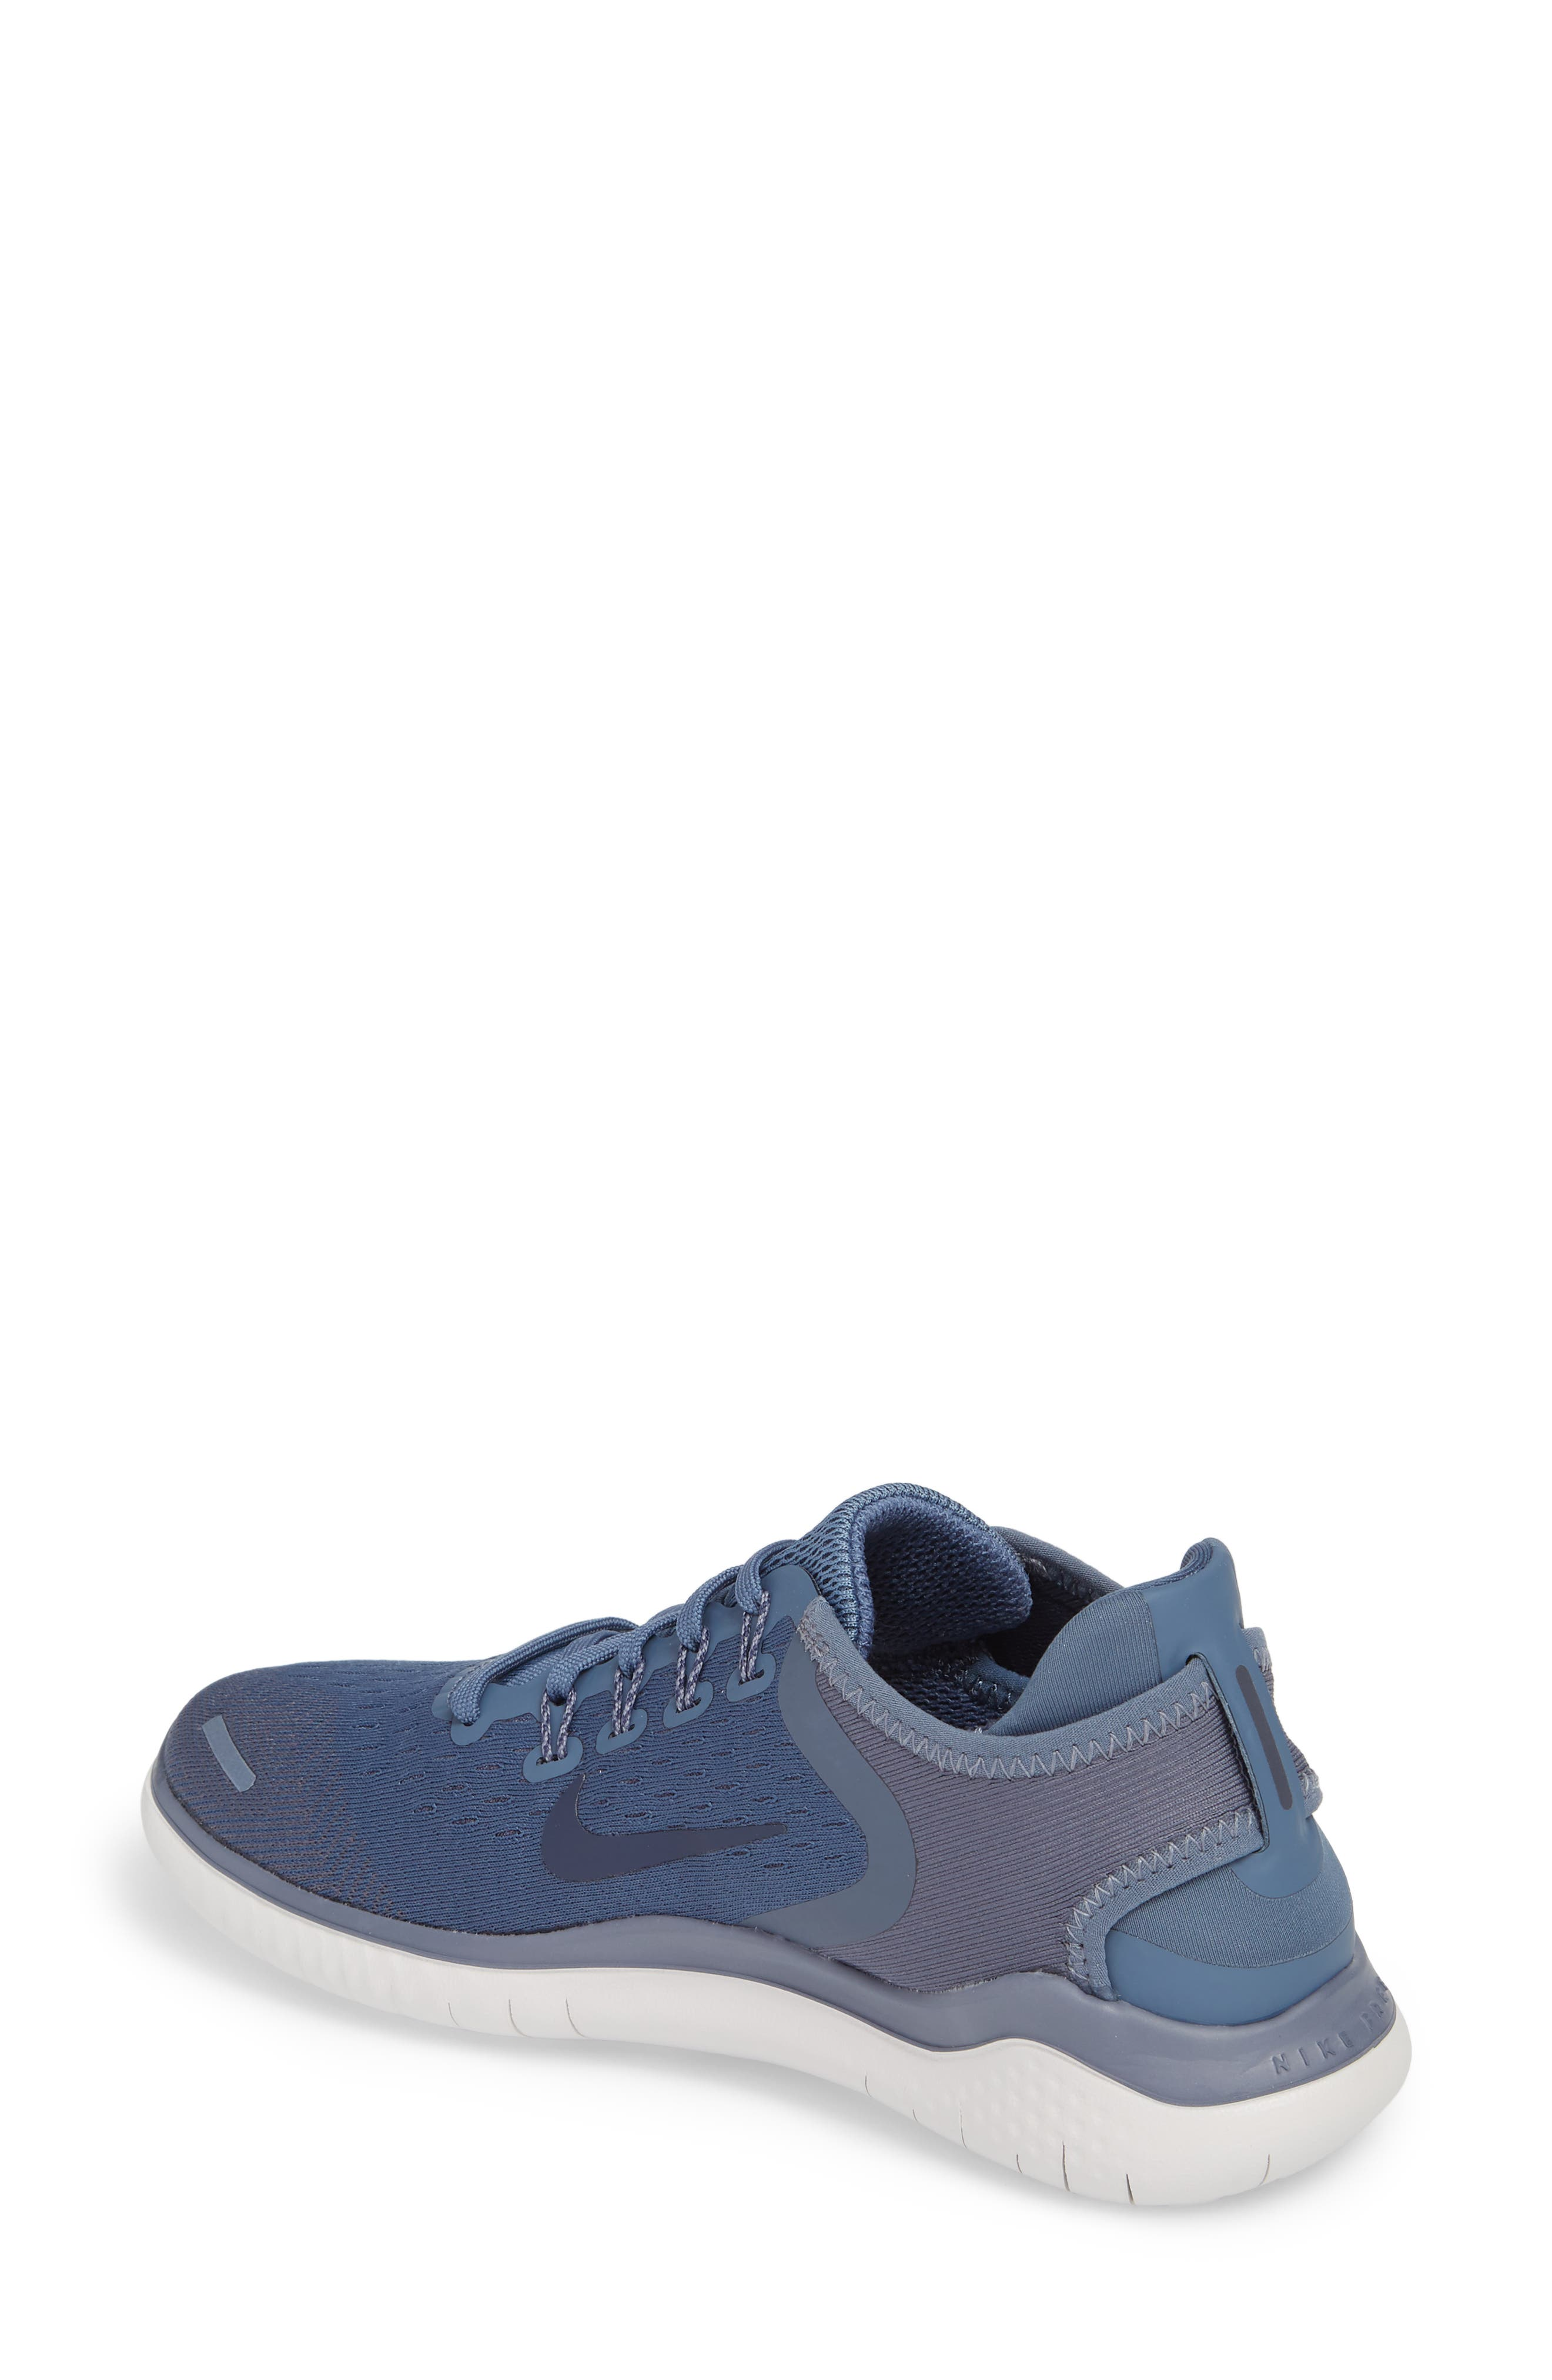 Free RN 2018 Running Shoe,                             Alternate thumbnail 2, color,                             Diffused Blue/ Neutral Indigo